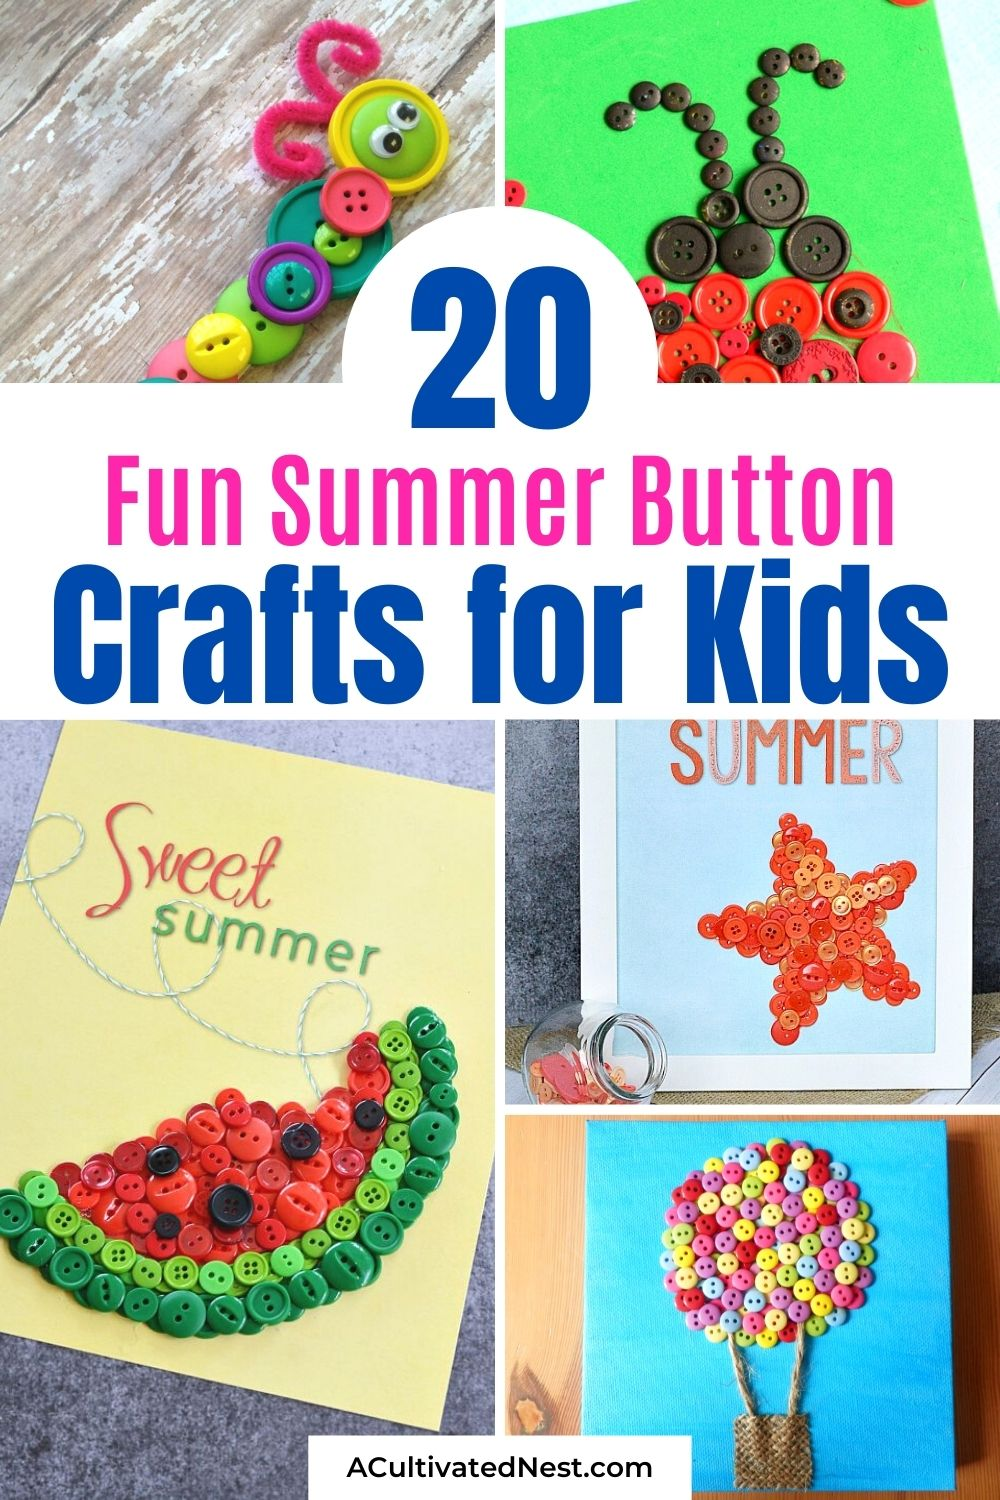 20 Summer Button Crafts for Kids- For an inexpensive and fun way to keep the kids busy this summer, check out these summer button crafts for kids! They're perfect for kids of all ages! | #craftsForKids #summerKidsCrafts #buttonCrafts #kidsActivity #ACultivatedNest